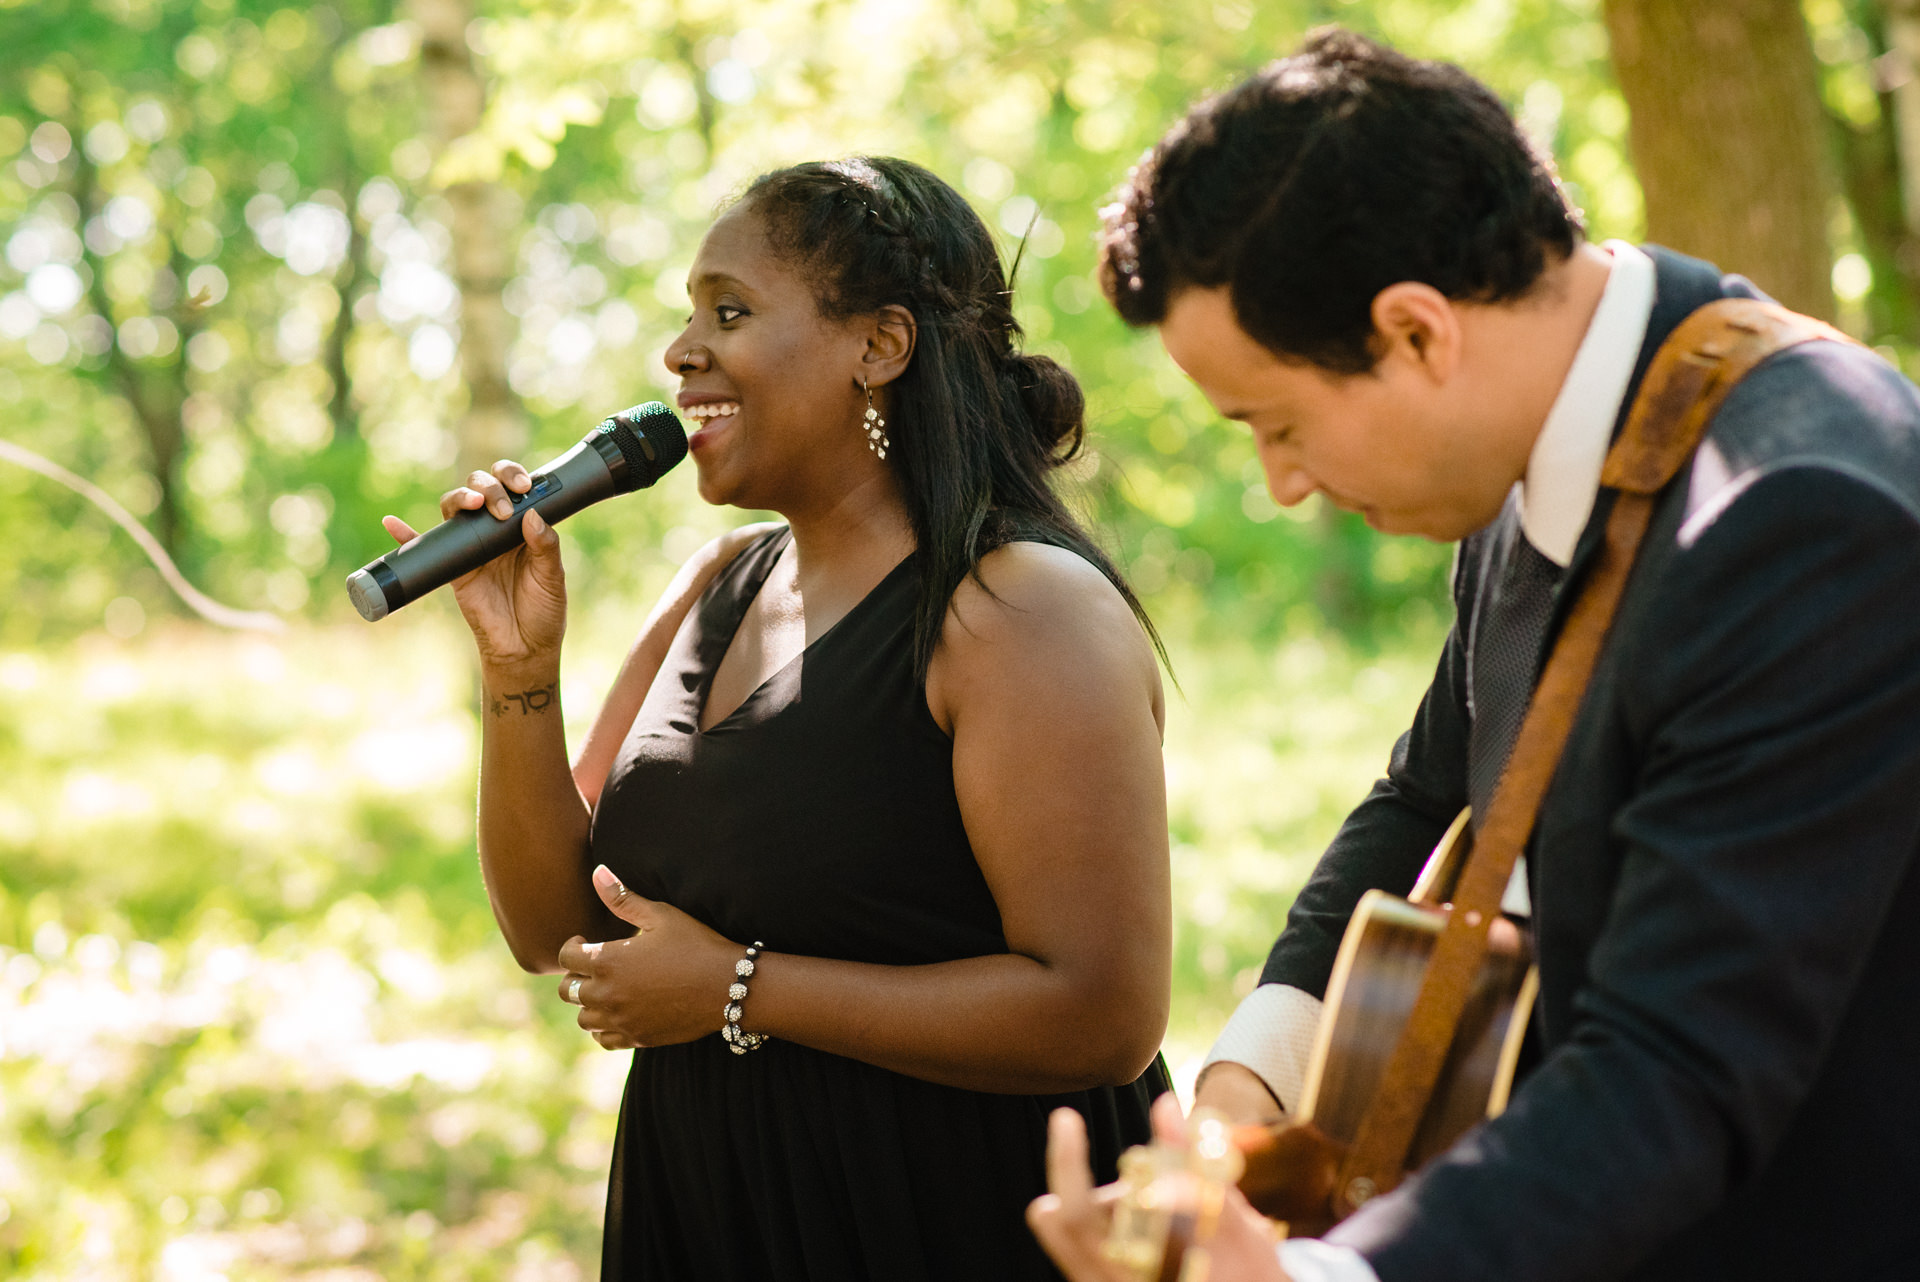 Mount Royal Park, Montreal, Quebec Wedding Photo | The brides neighbor and friend singing during the document signing